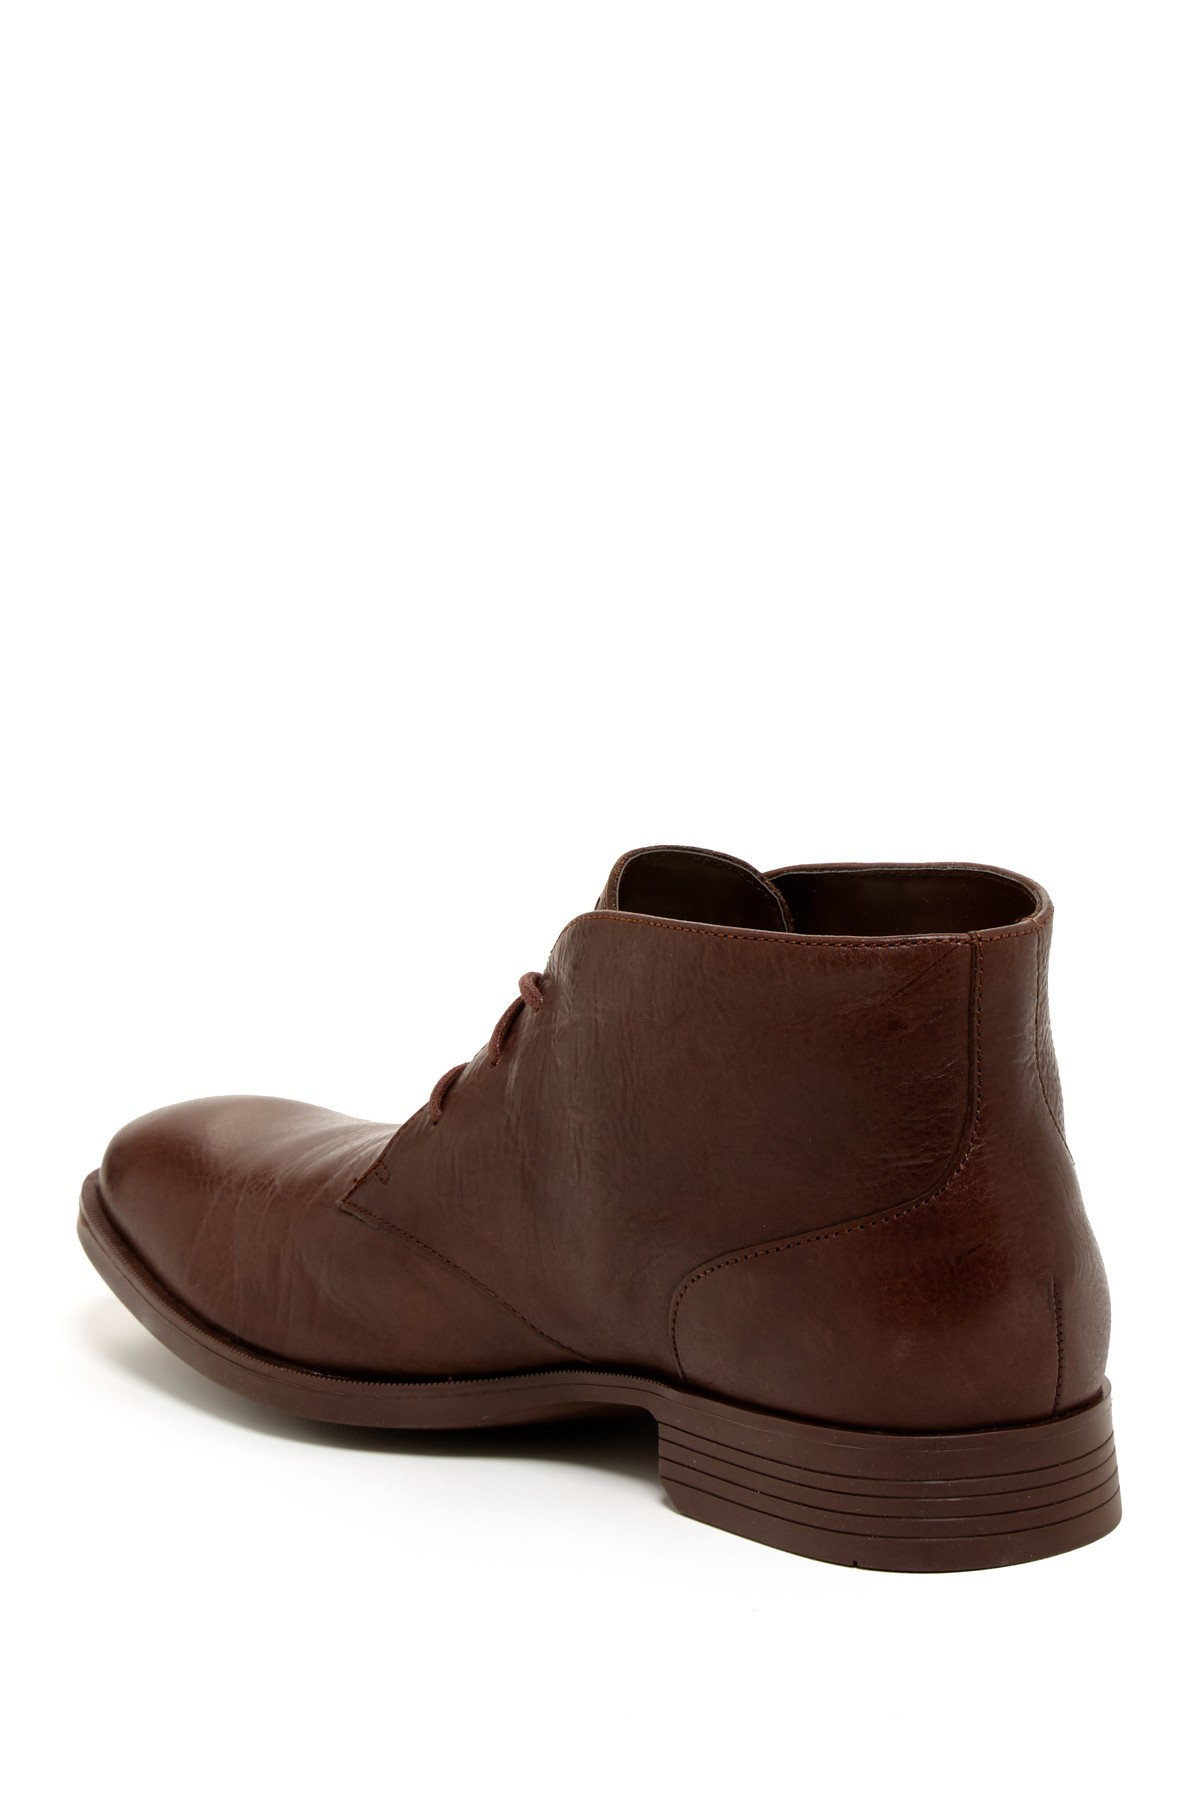 Cole Haan Leather Chelsea Boots In Chestnut Brown For